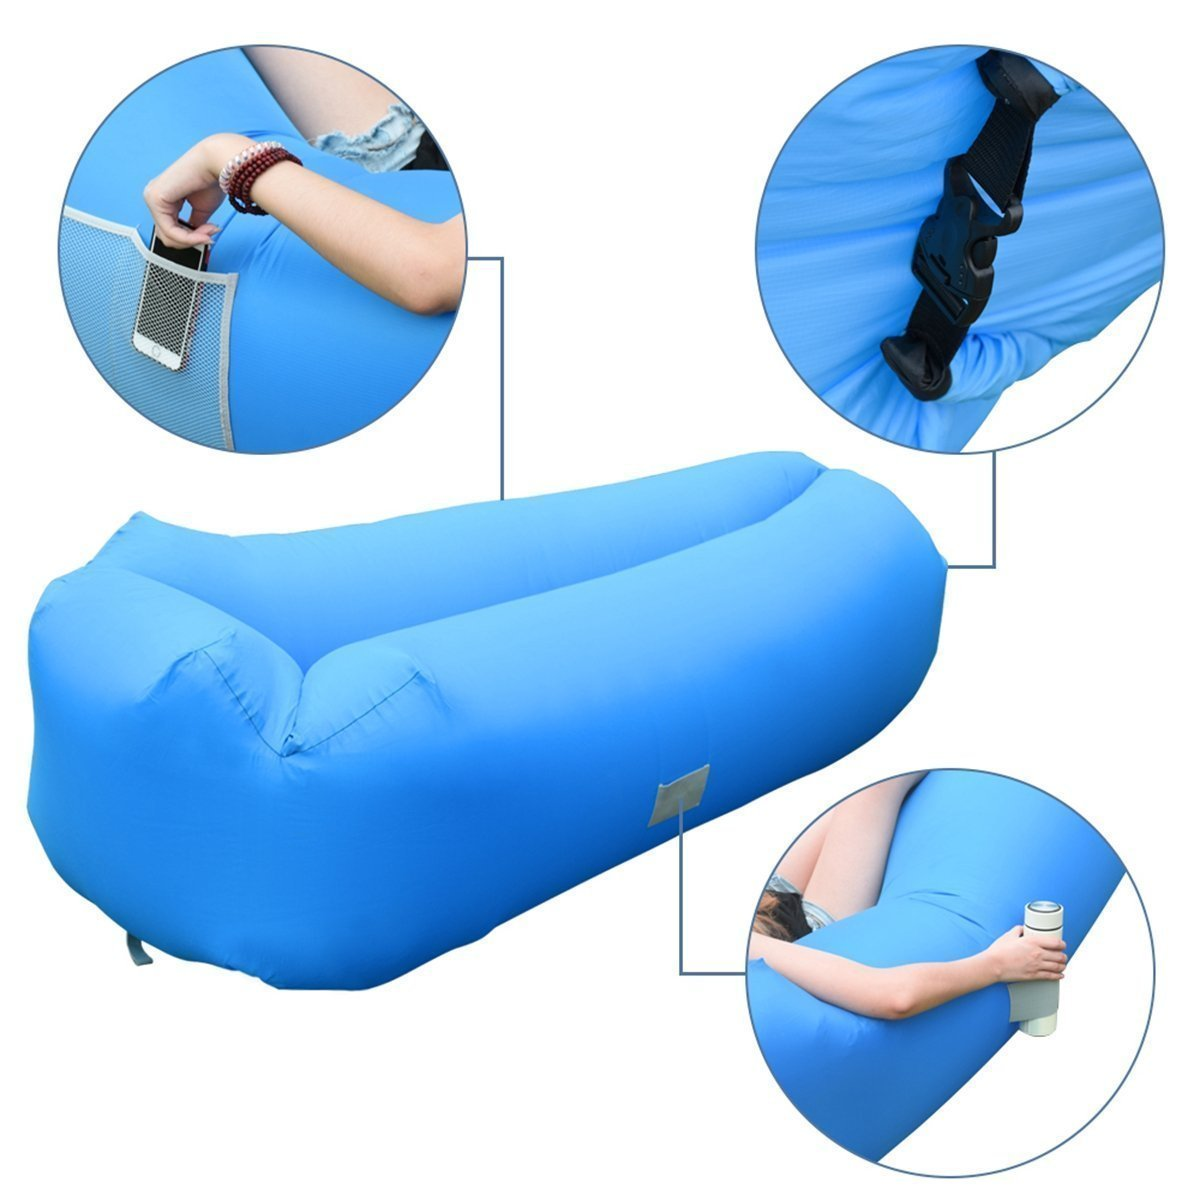 Inflatable Sofa Review: Easy Inflatable Lounger Sofa